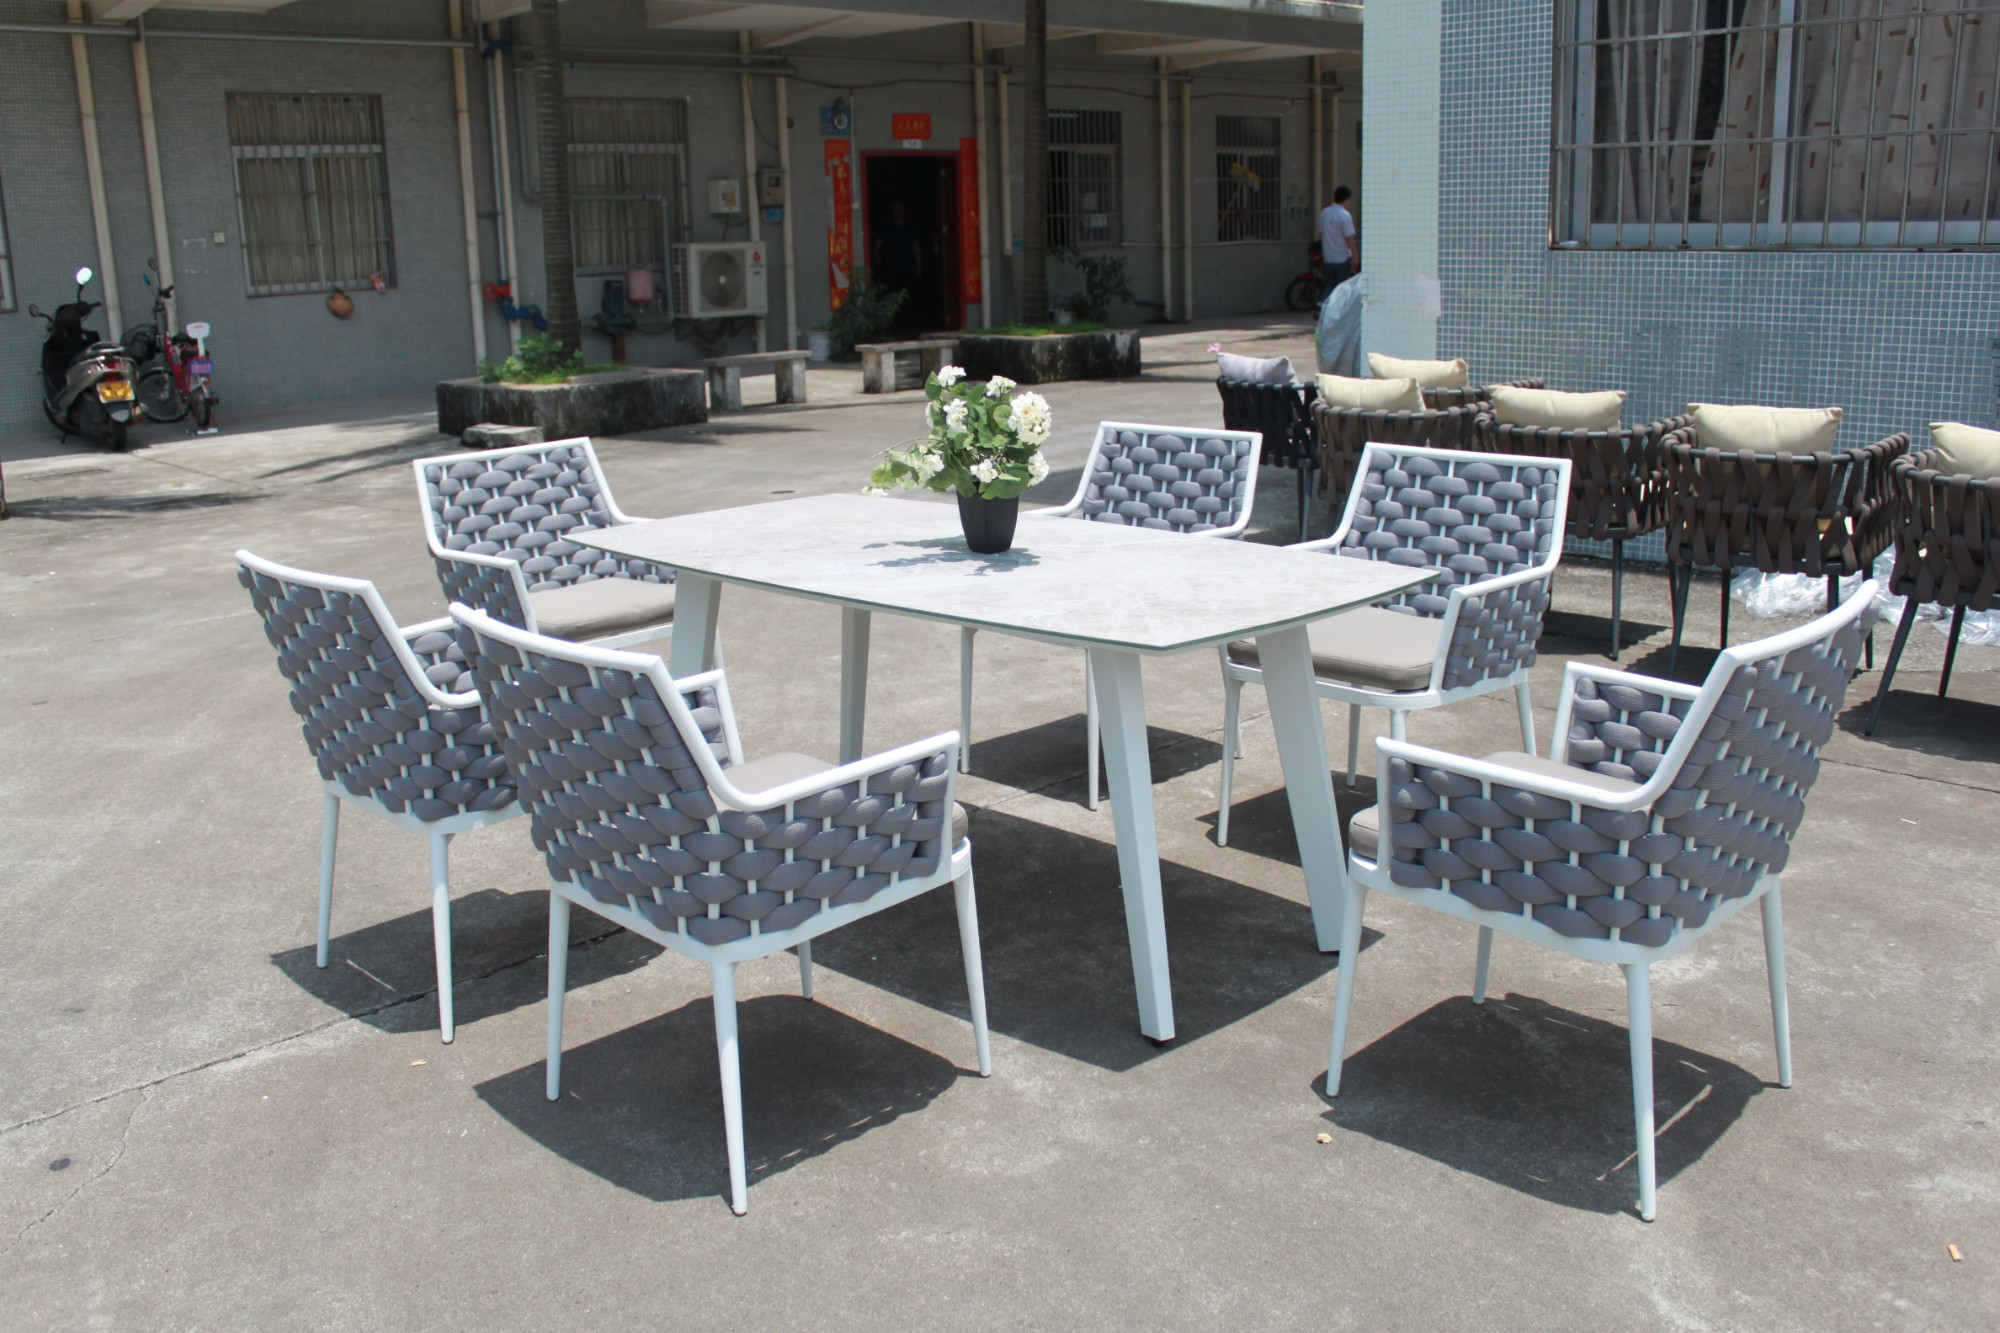 Outdoor Rope Dining Table And Chairs Manufacturers, Outdoor Rope Dining Table And Chairs Factory, Supply Outdoor Rope Dining Table And Chairs